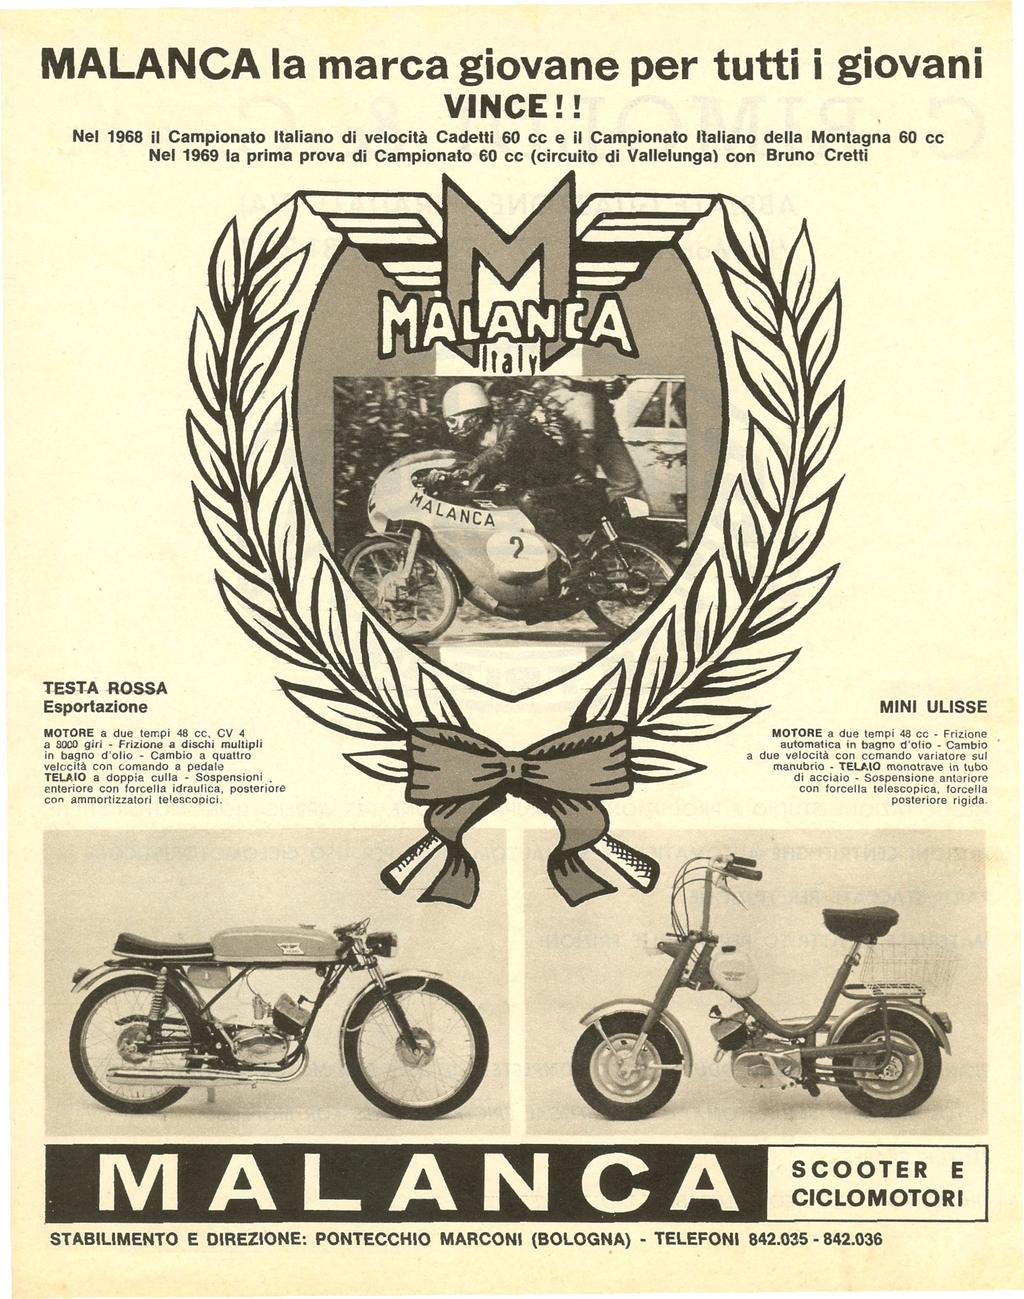 Catalogues - Malanca testarossa export 1969